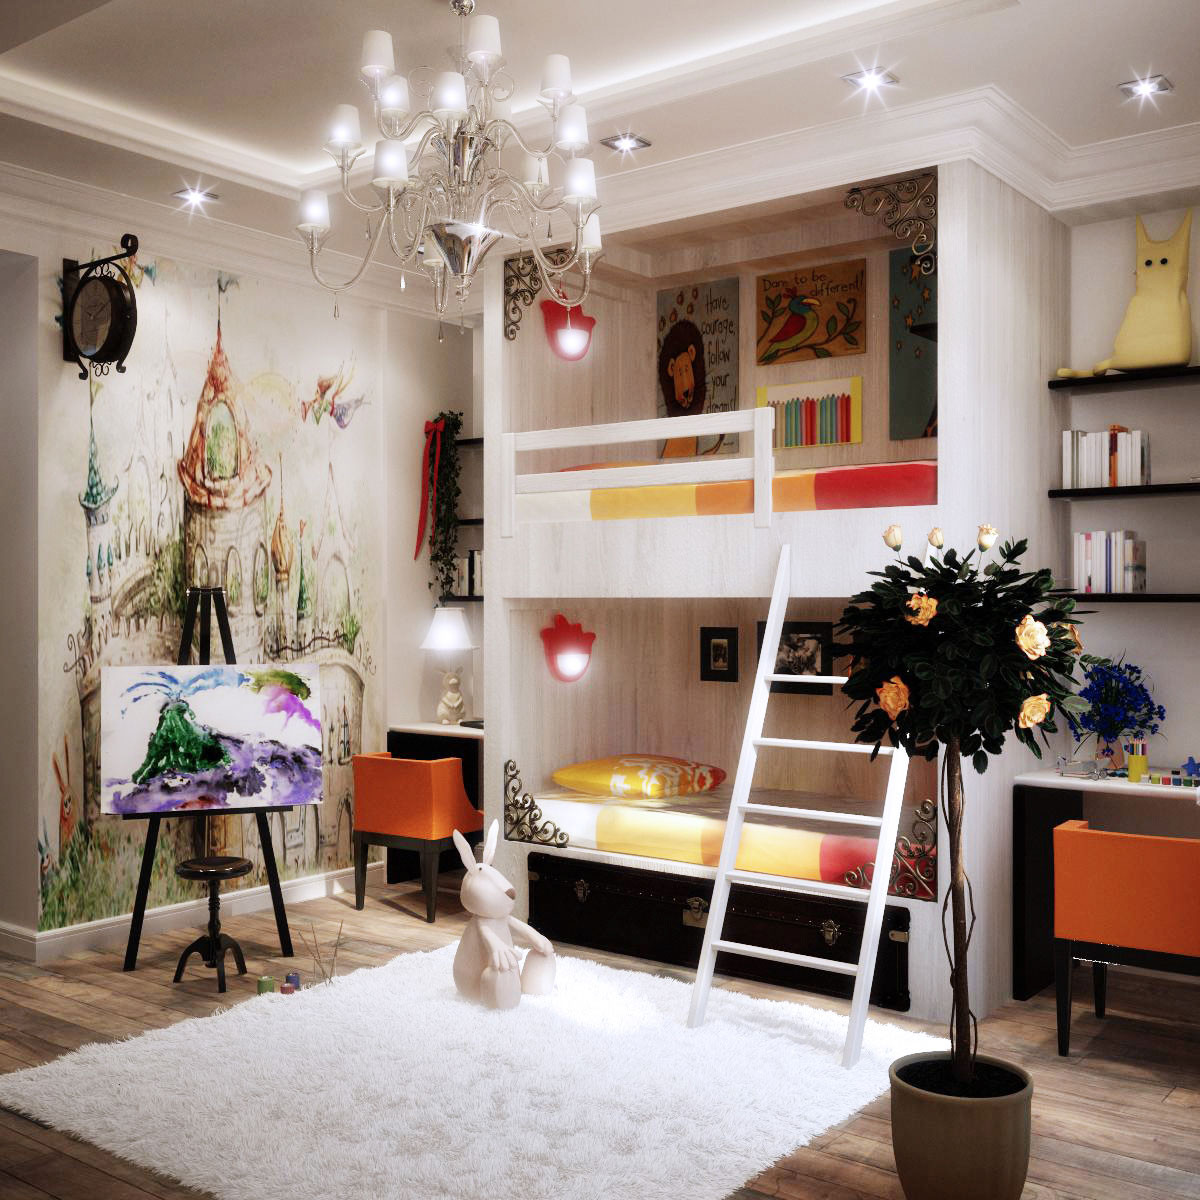 Best ideas about Kids Room Design . Save or Pin Colorful Kids Rooms Now.